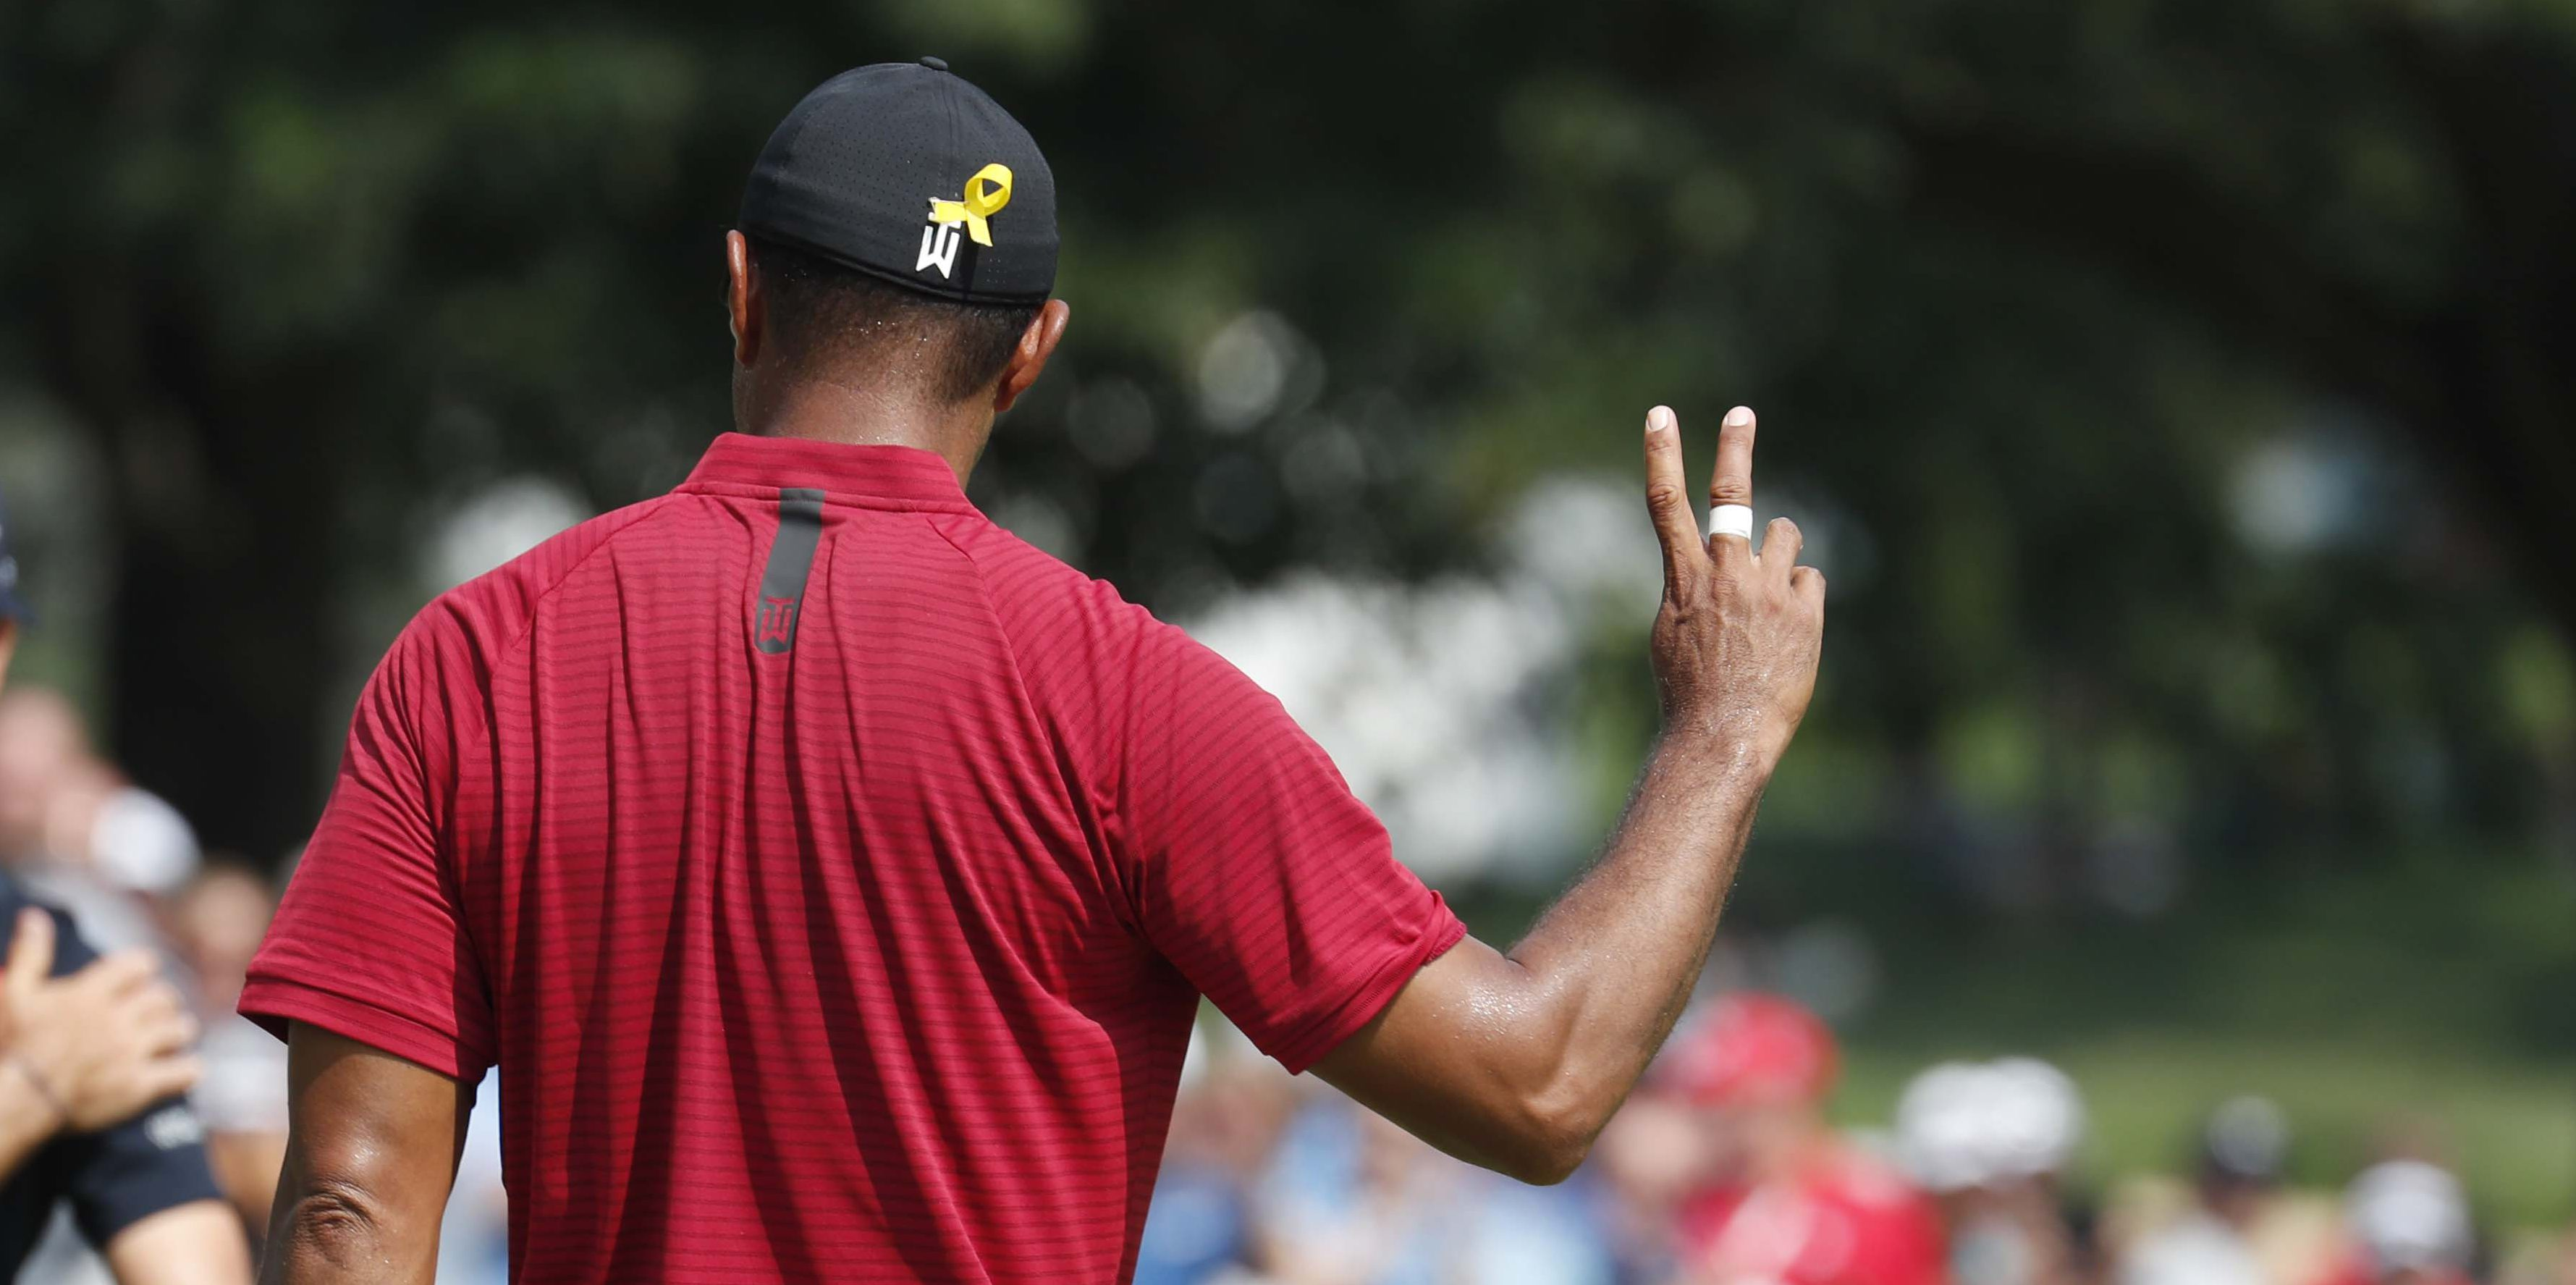 Aug 5, 2018; Akron, OH, USA; PGA golfer Tiger Woods reacts to making a birdie on the first hole during the final round of the WGC - Bridgestone Invitational golf tournament at Firestone Country Club - South Course. Mandatory Credit: Brian Spurlock-USA TODAY Sports